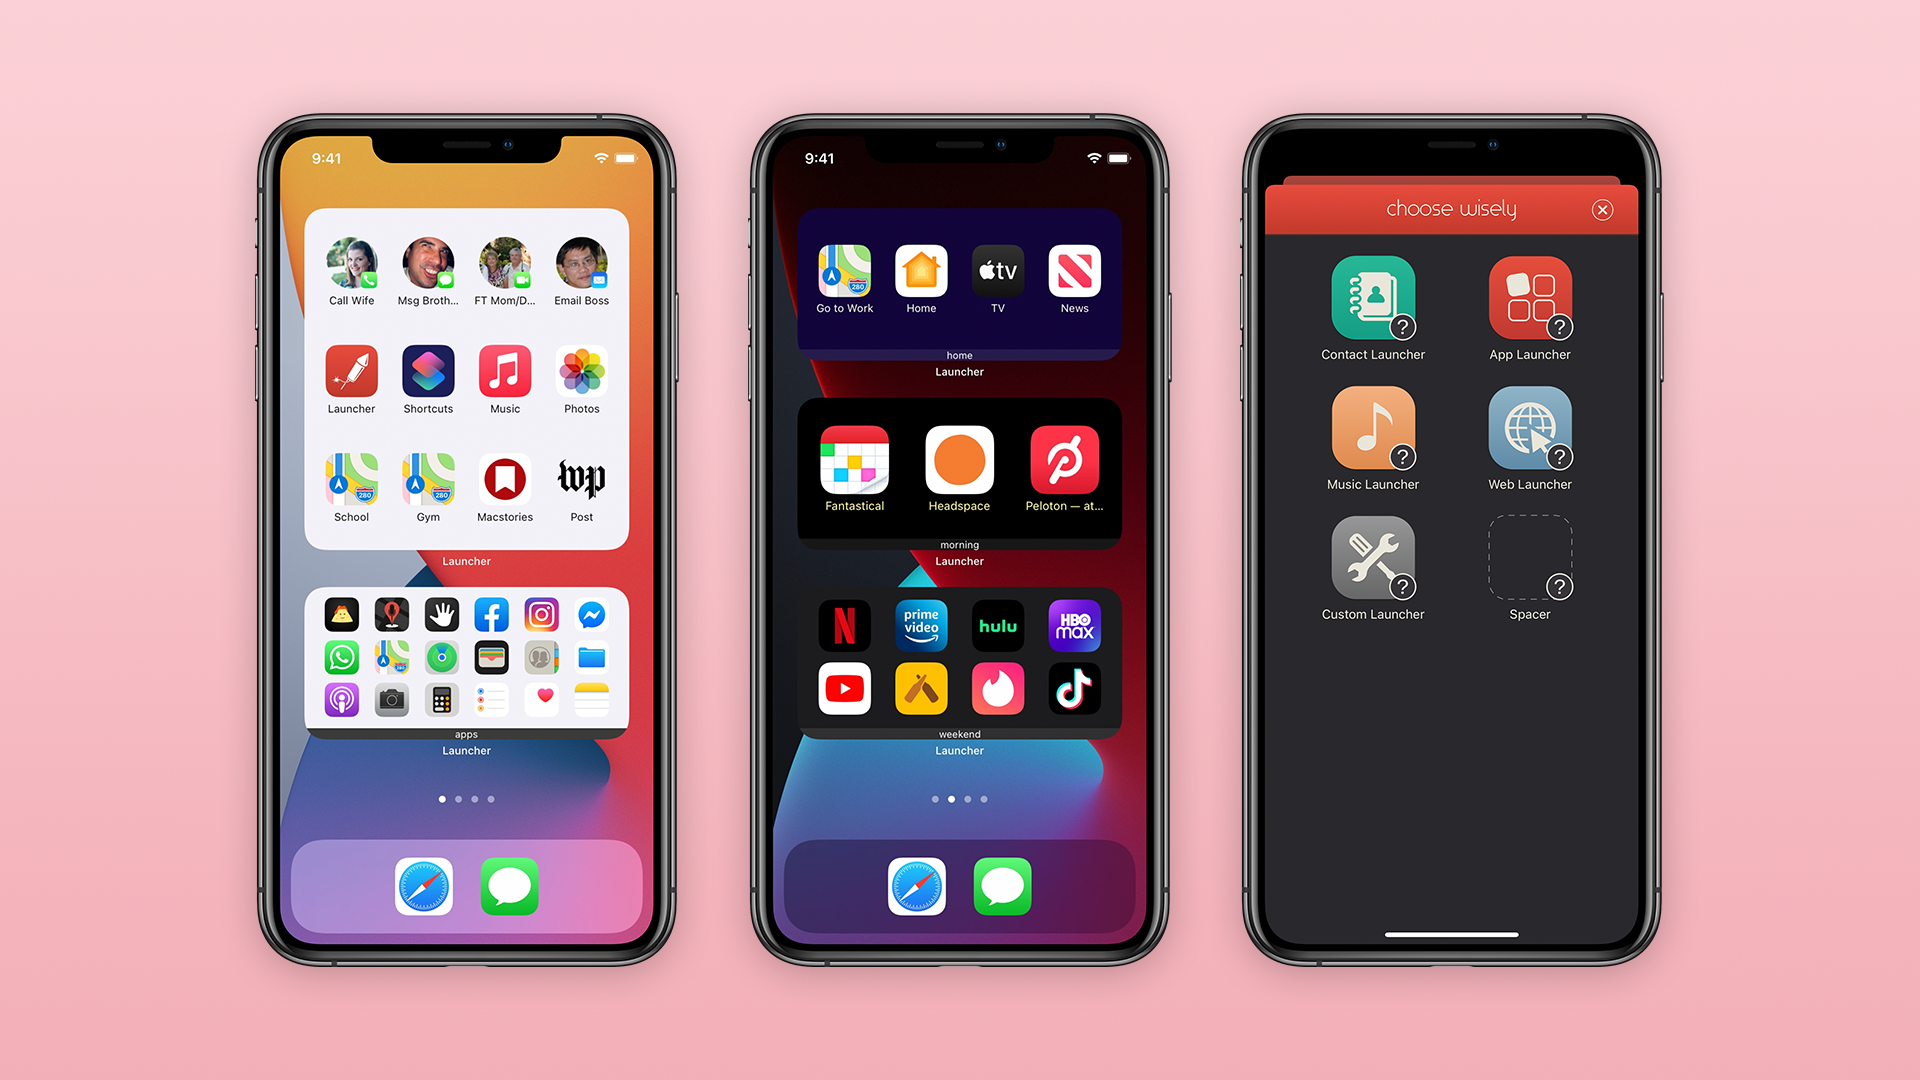 Launcher 5 lets you create custom iOS 14 widgets with different shortcuts